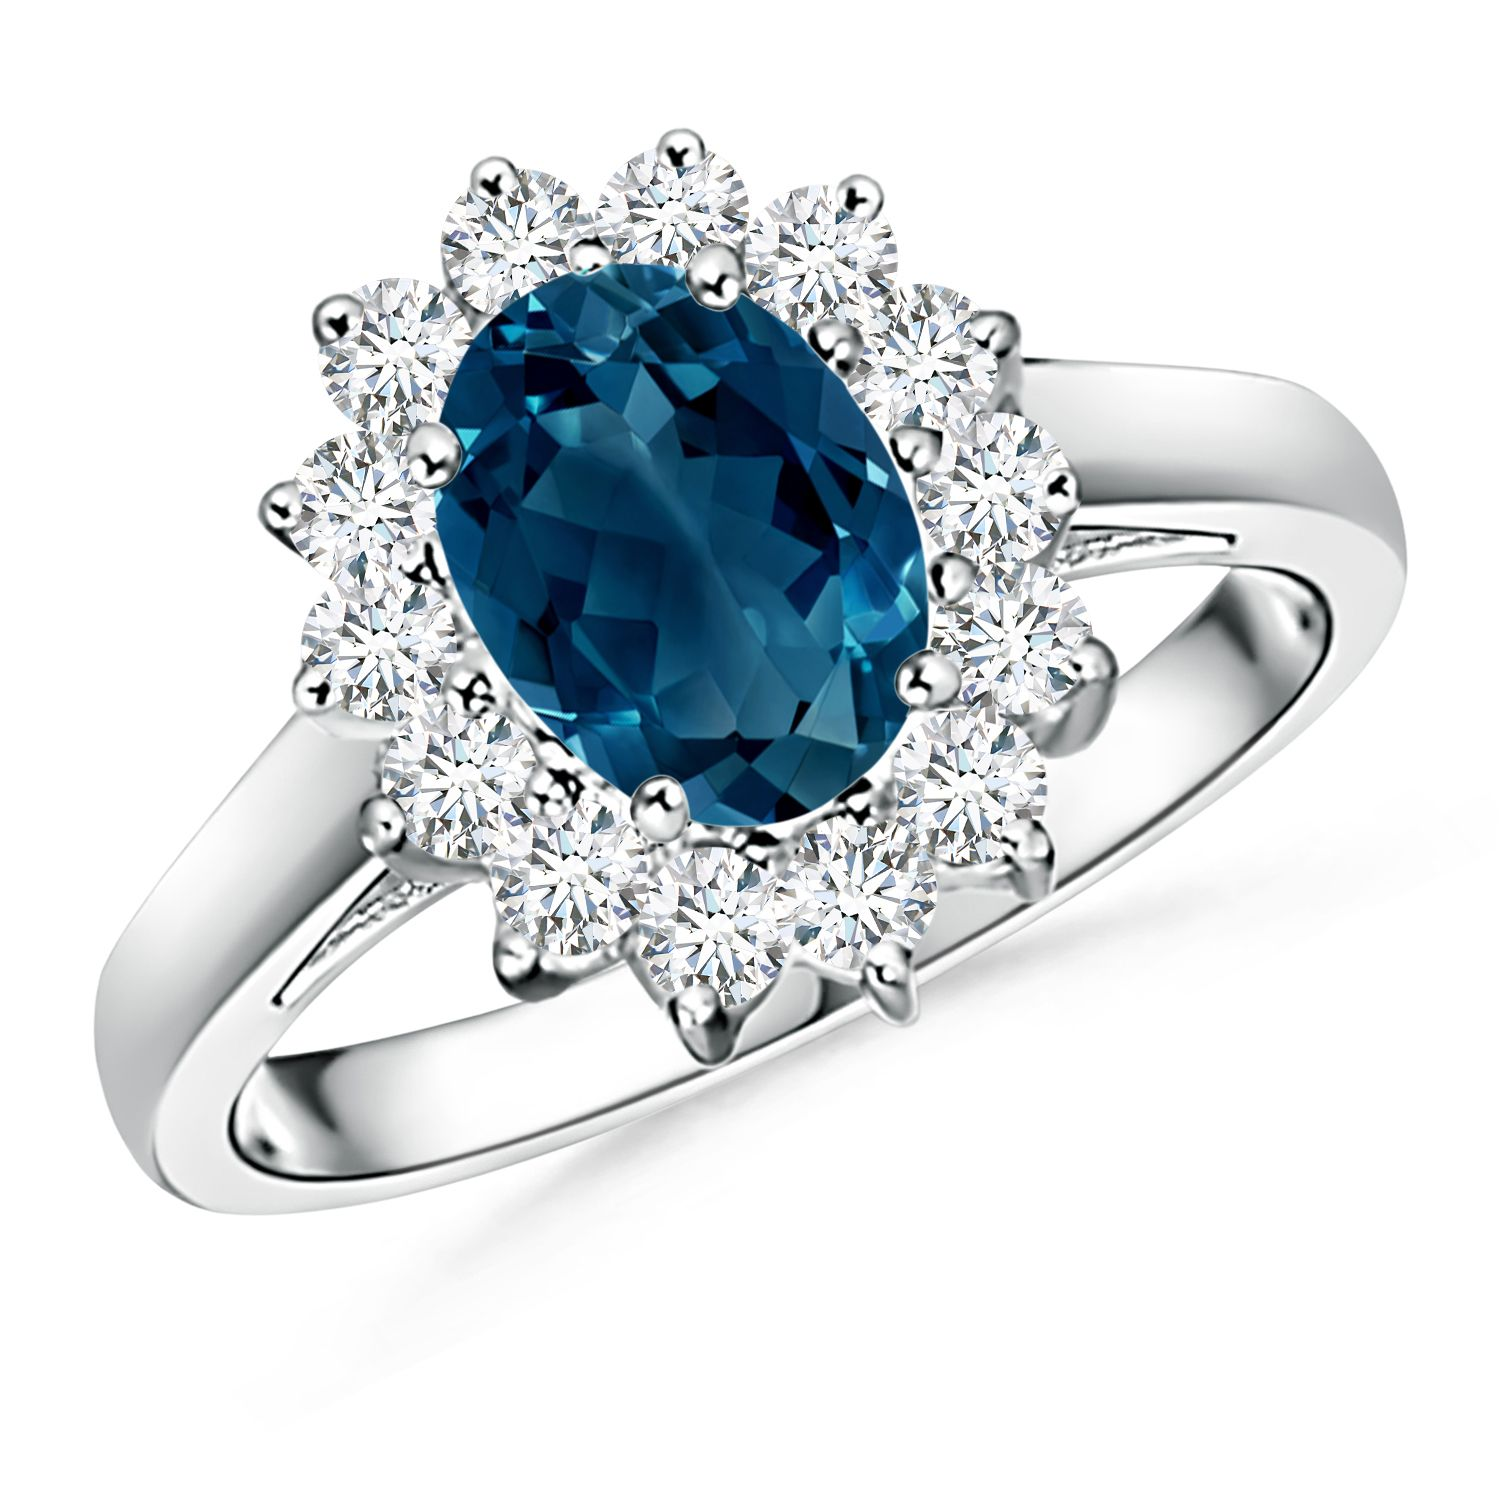 Angara Prong Set Round London Blue Topaz Solitaire Ring kMH9OCH